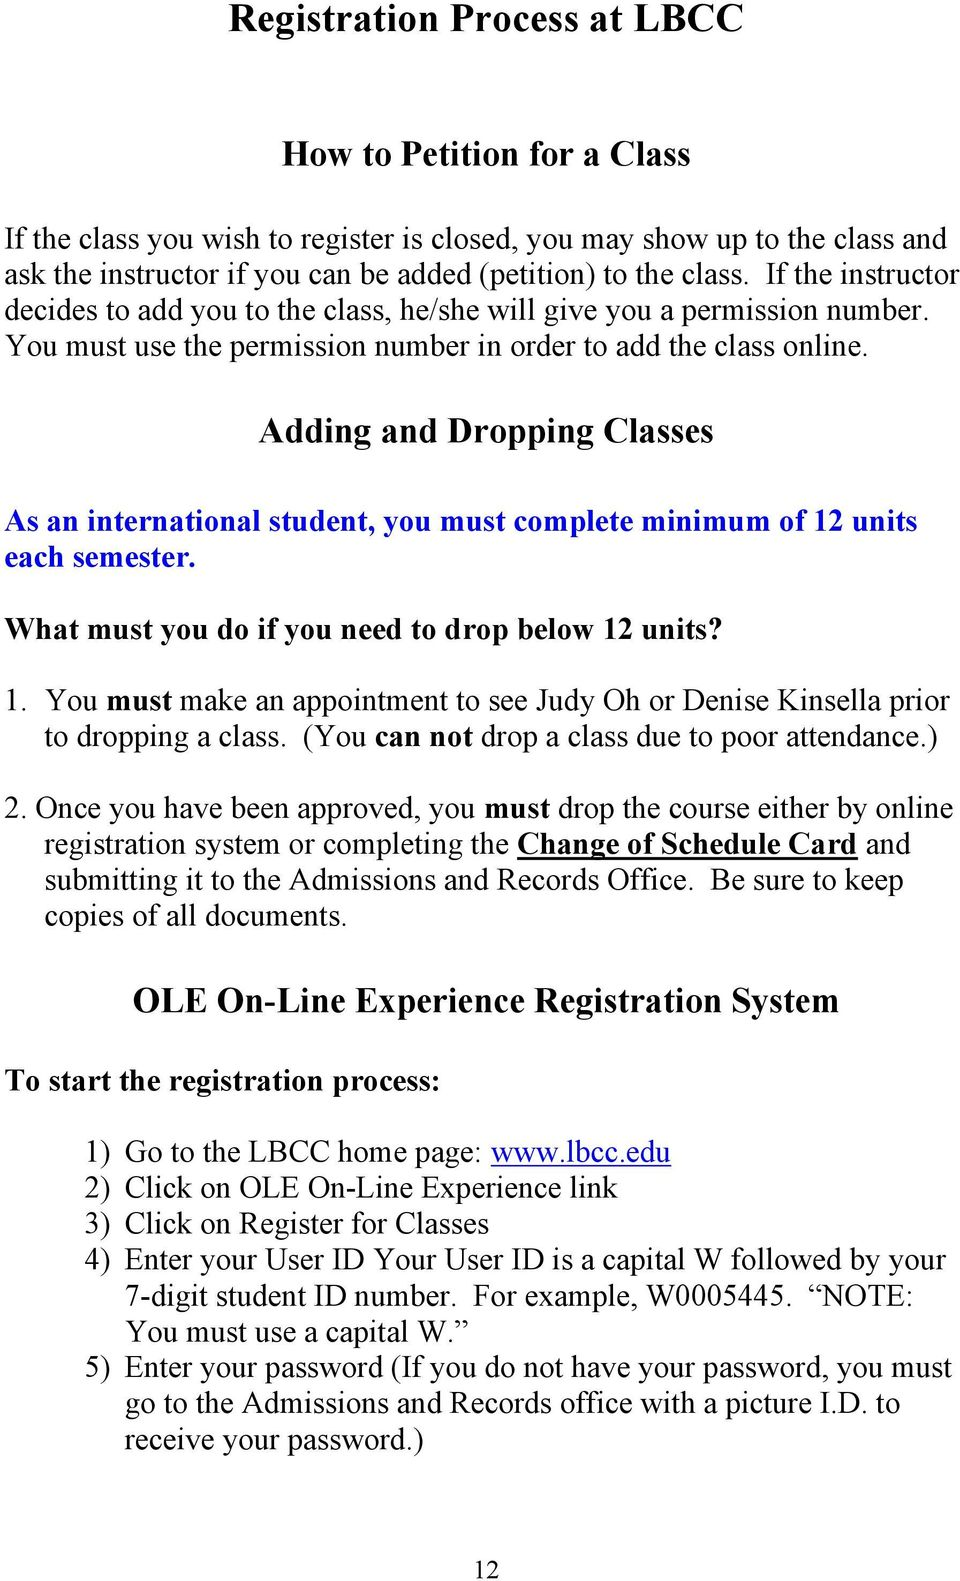 Adding and Dropping Classes As an international student, you must complete minimum of 12 units each semester. What must you do if you need to drop below 12 units? 1. You must make an appointment to see Judy Oh or Denise Kinsella prior to dropping a class.